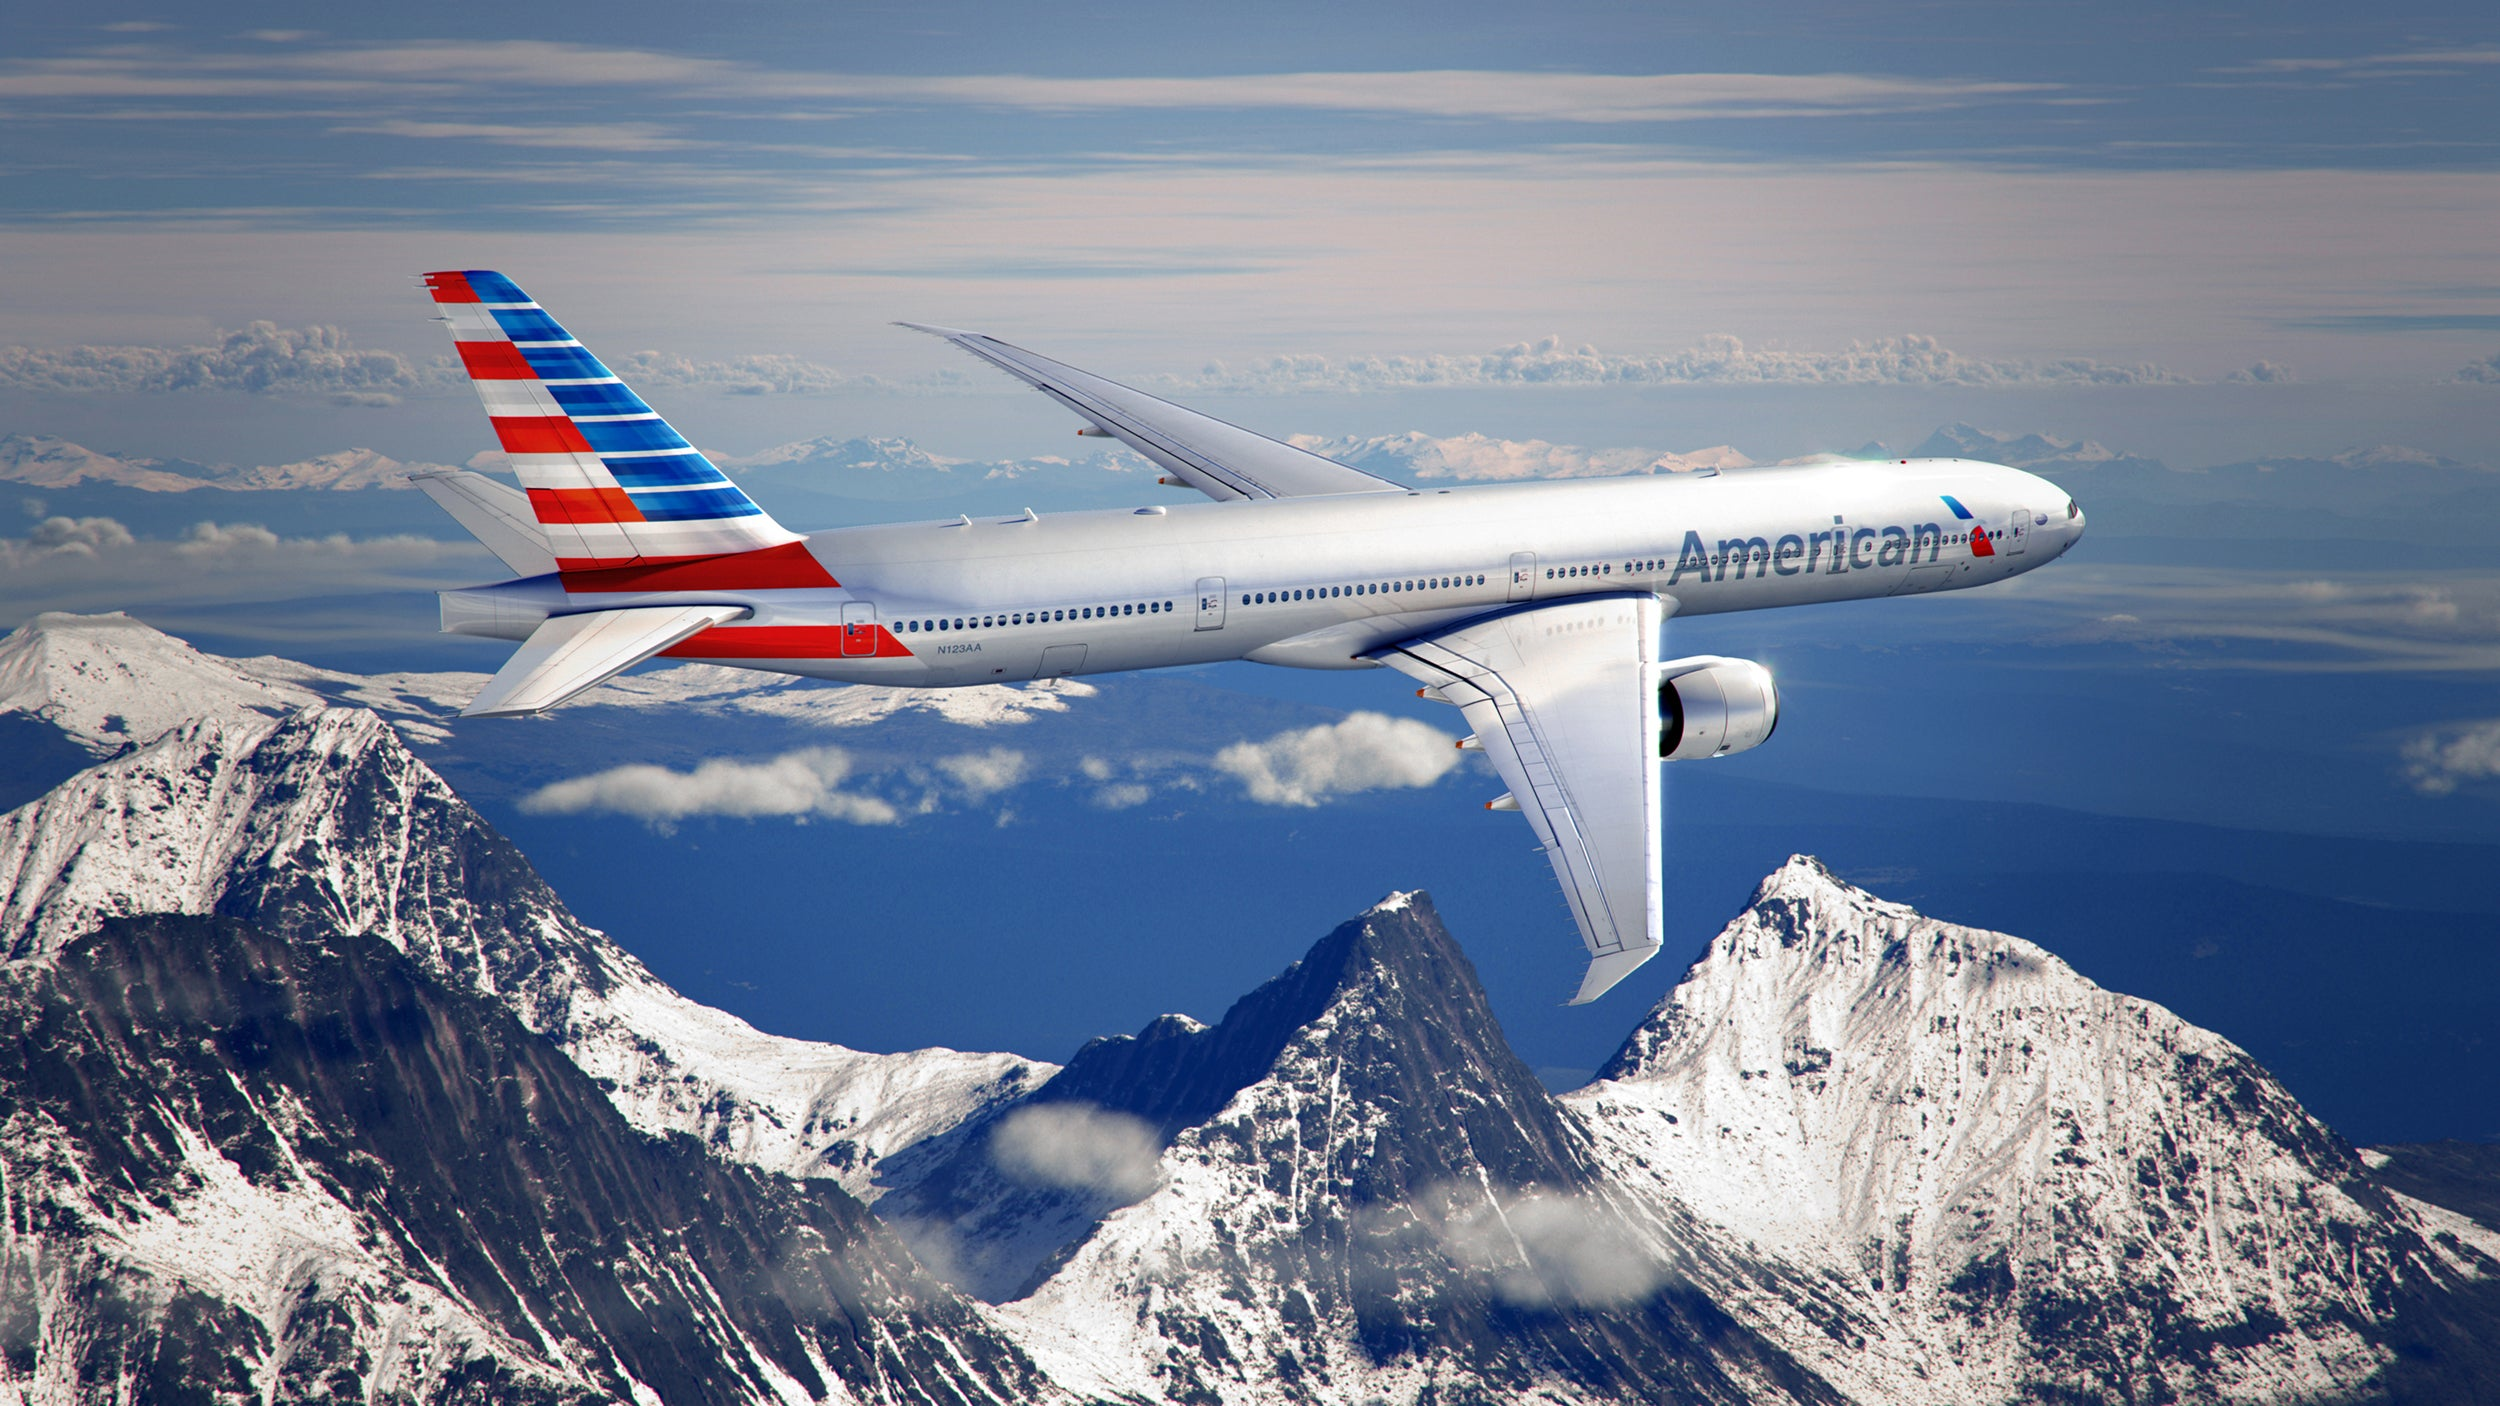 The Bigger Question, Will The American Airlines, Nasdaq Aal Survive?